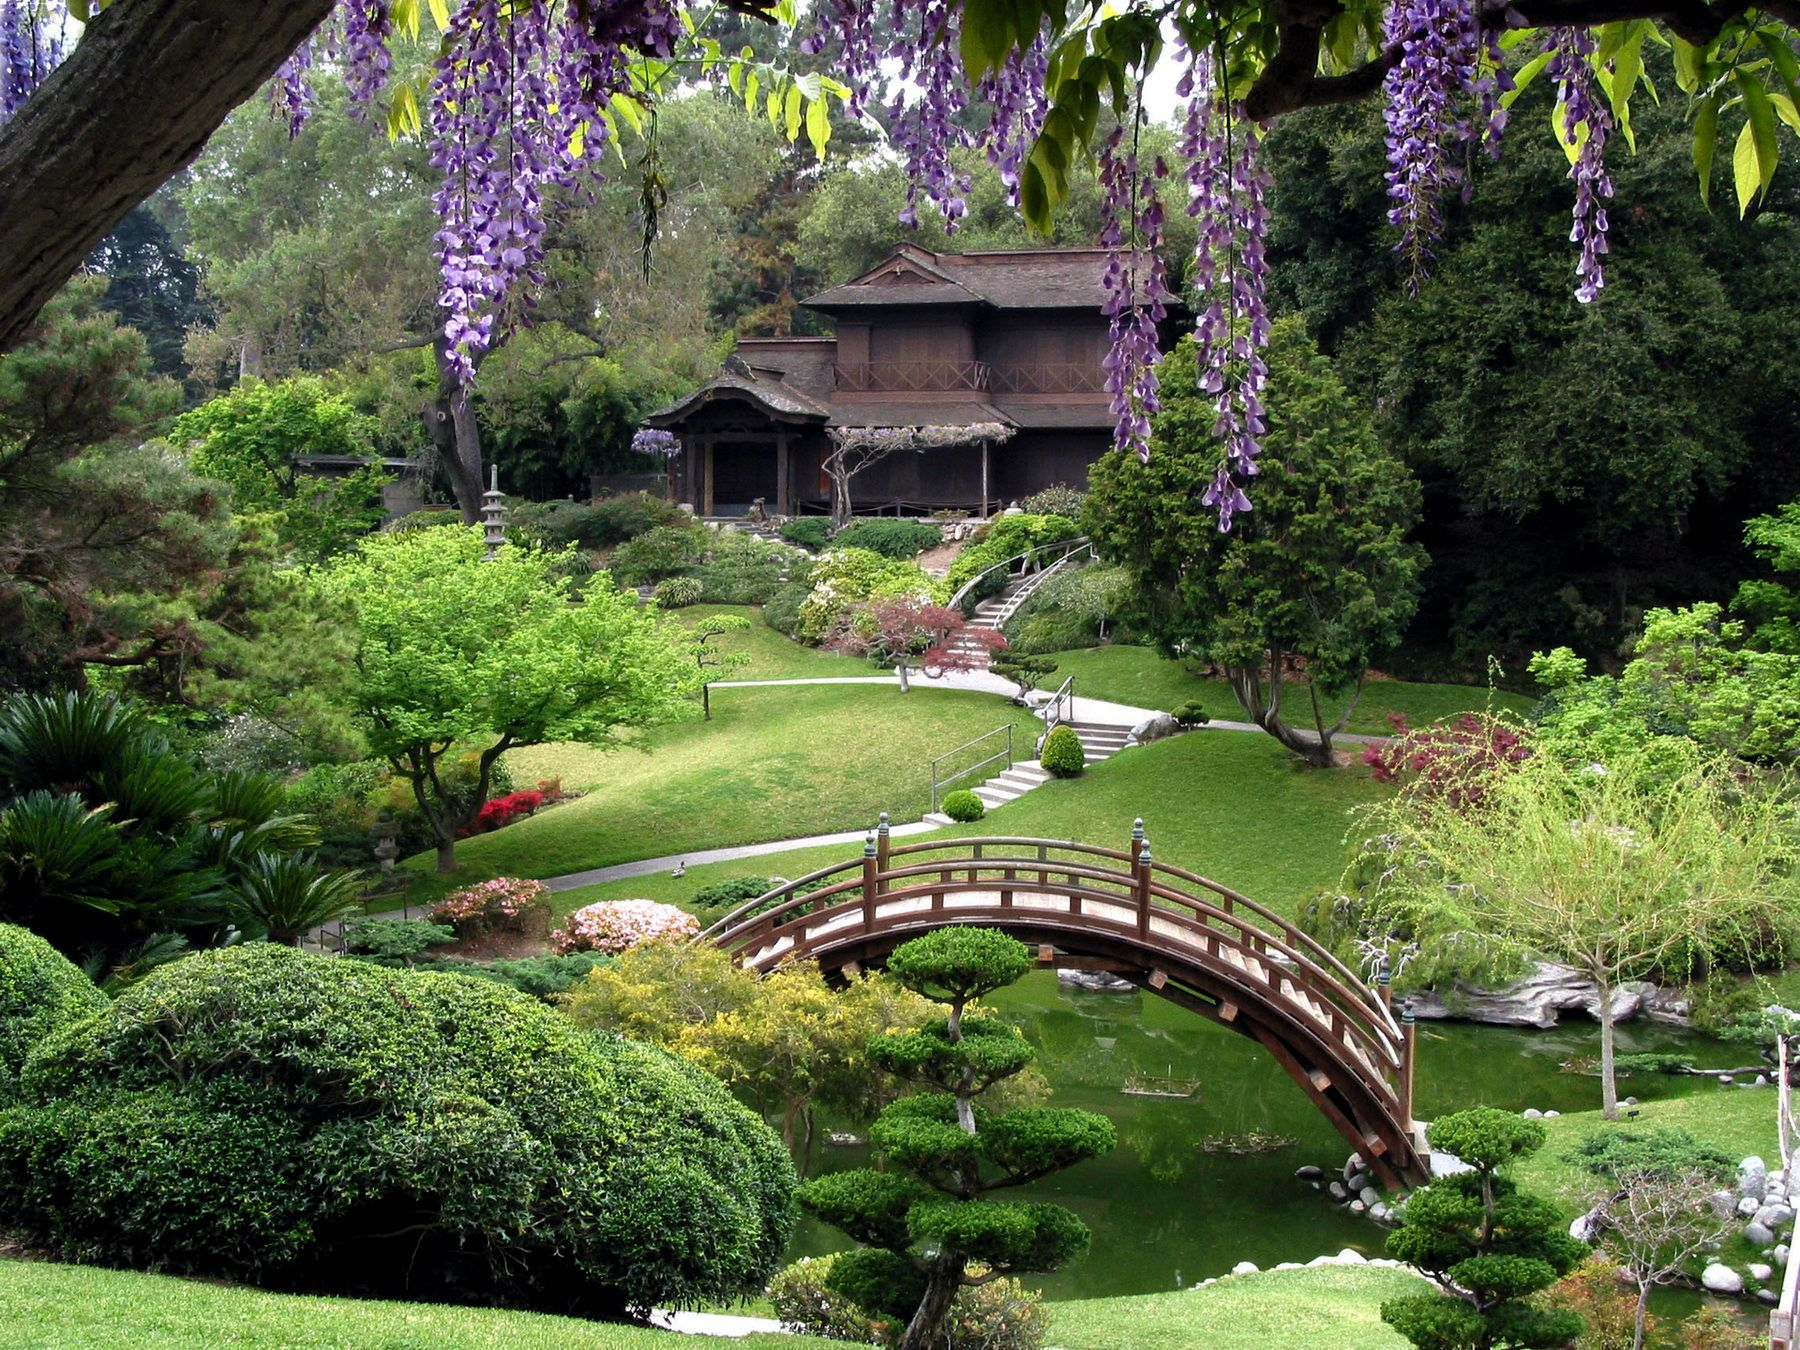 Wisteria Frames The Japanese Garden In Springtime At The Huntington